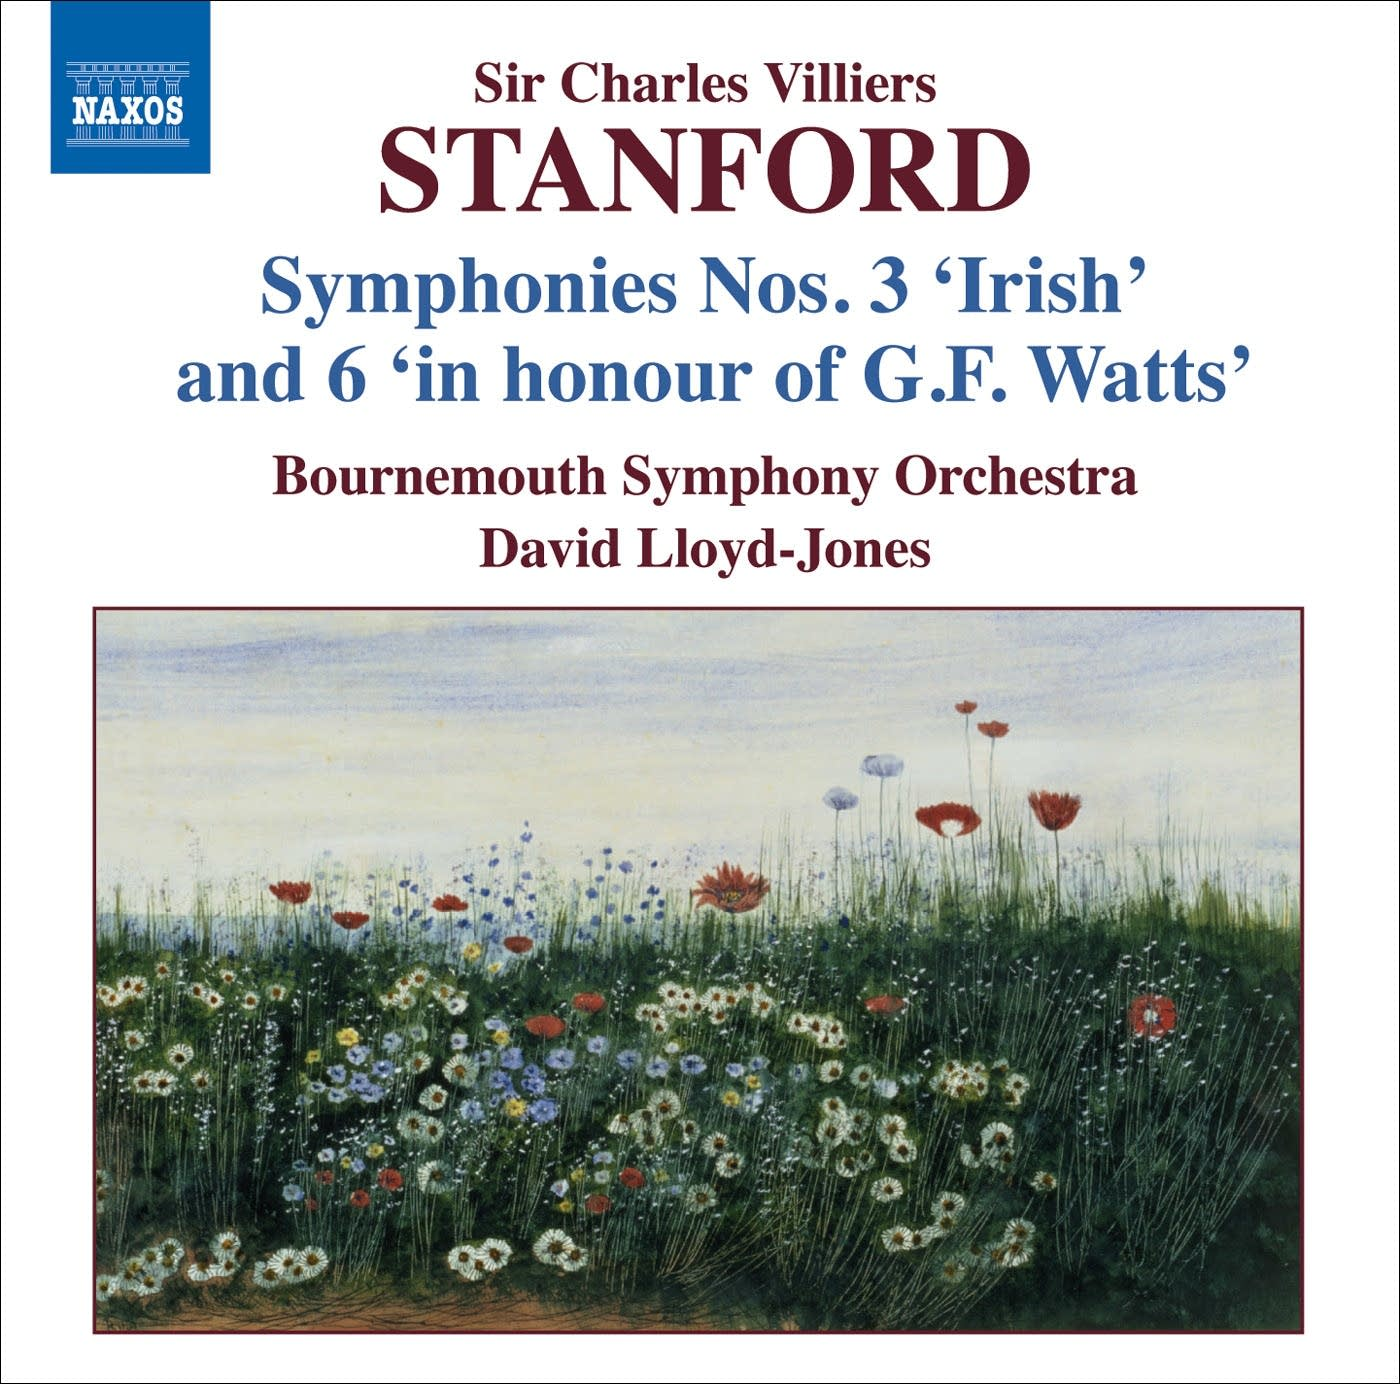 Charles Stanford - Symphony No. 3